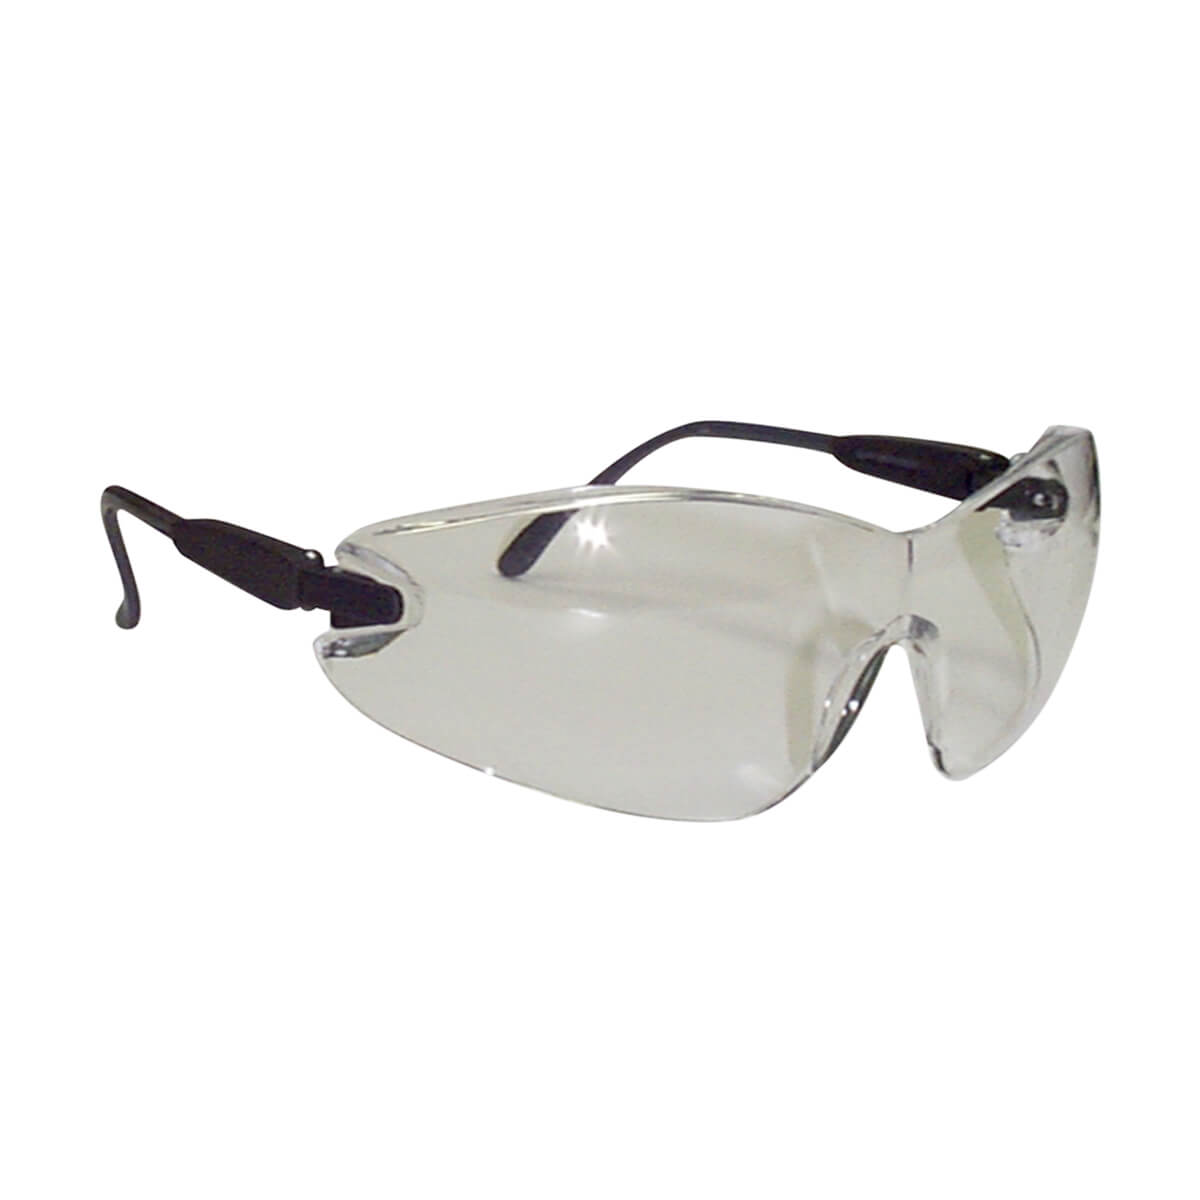 Brooklyn Protective Eyewear - Clear Lens